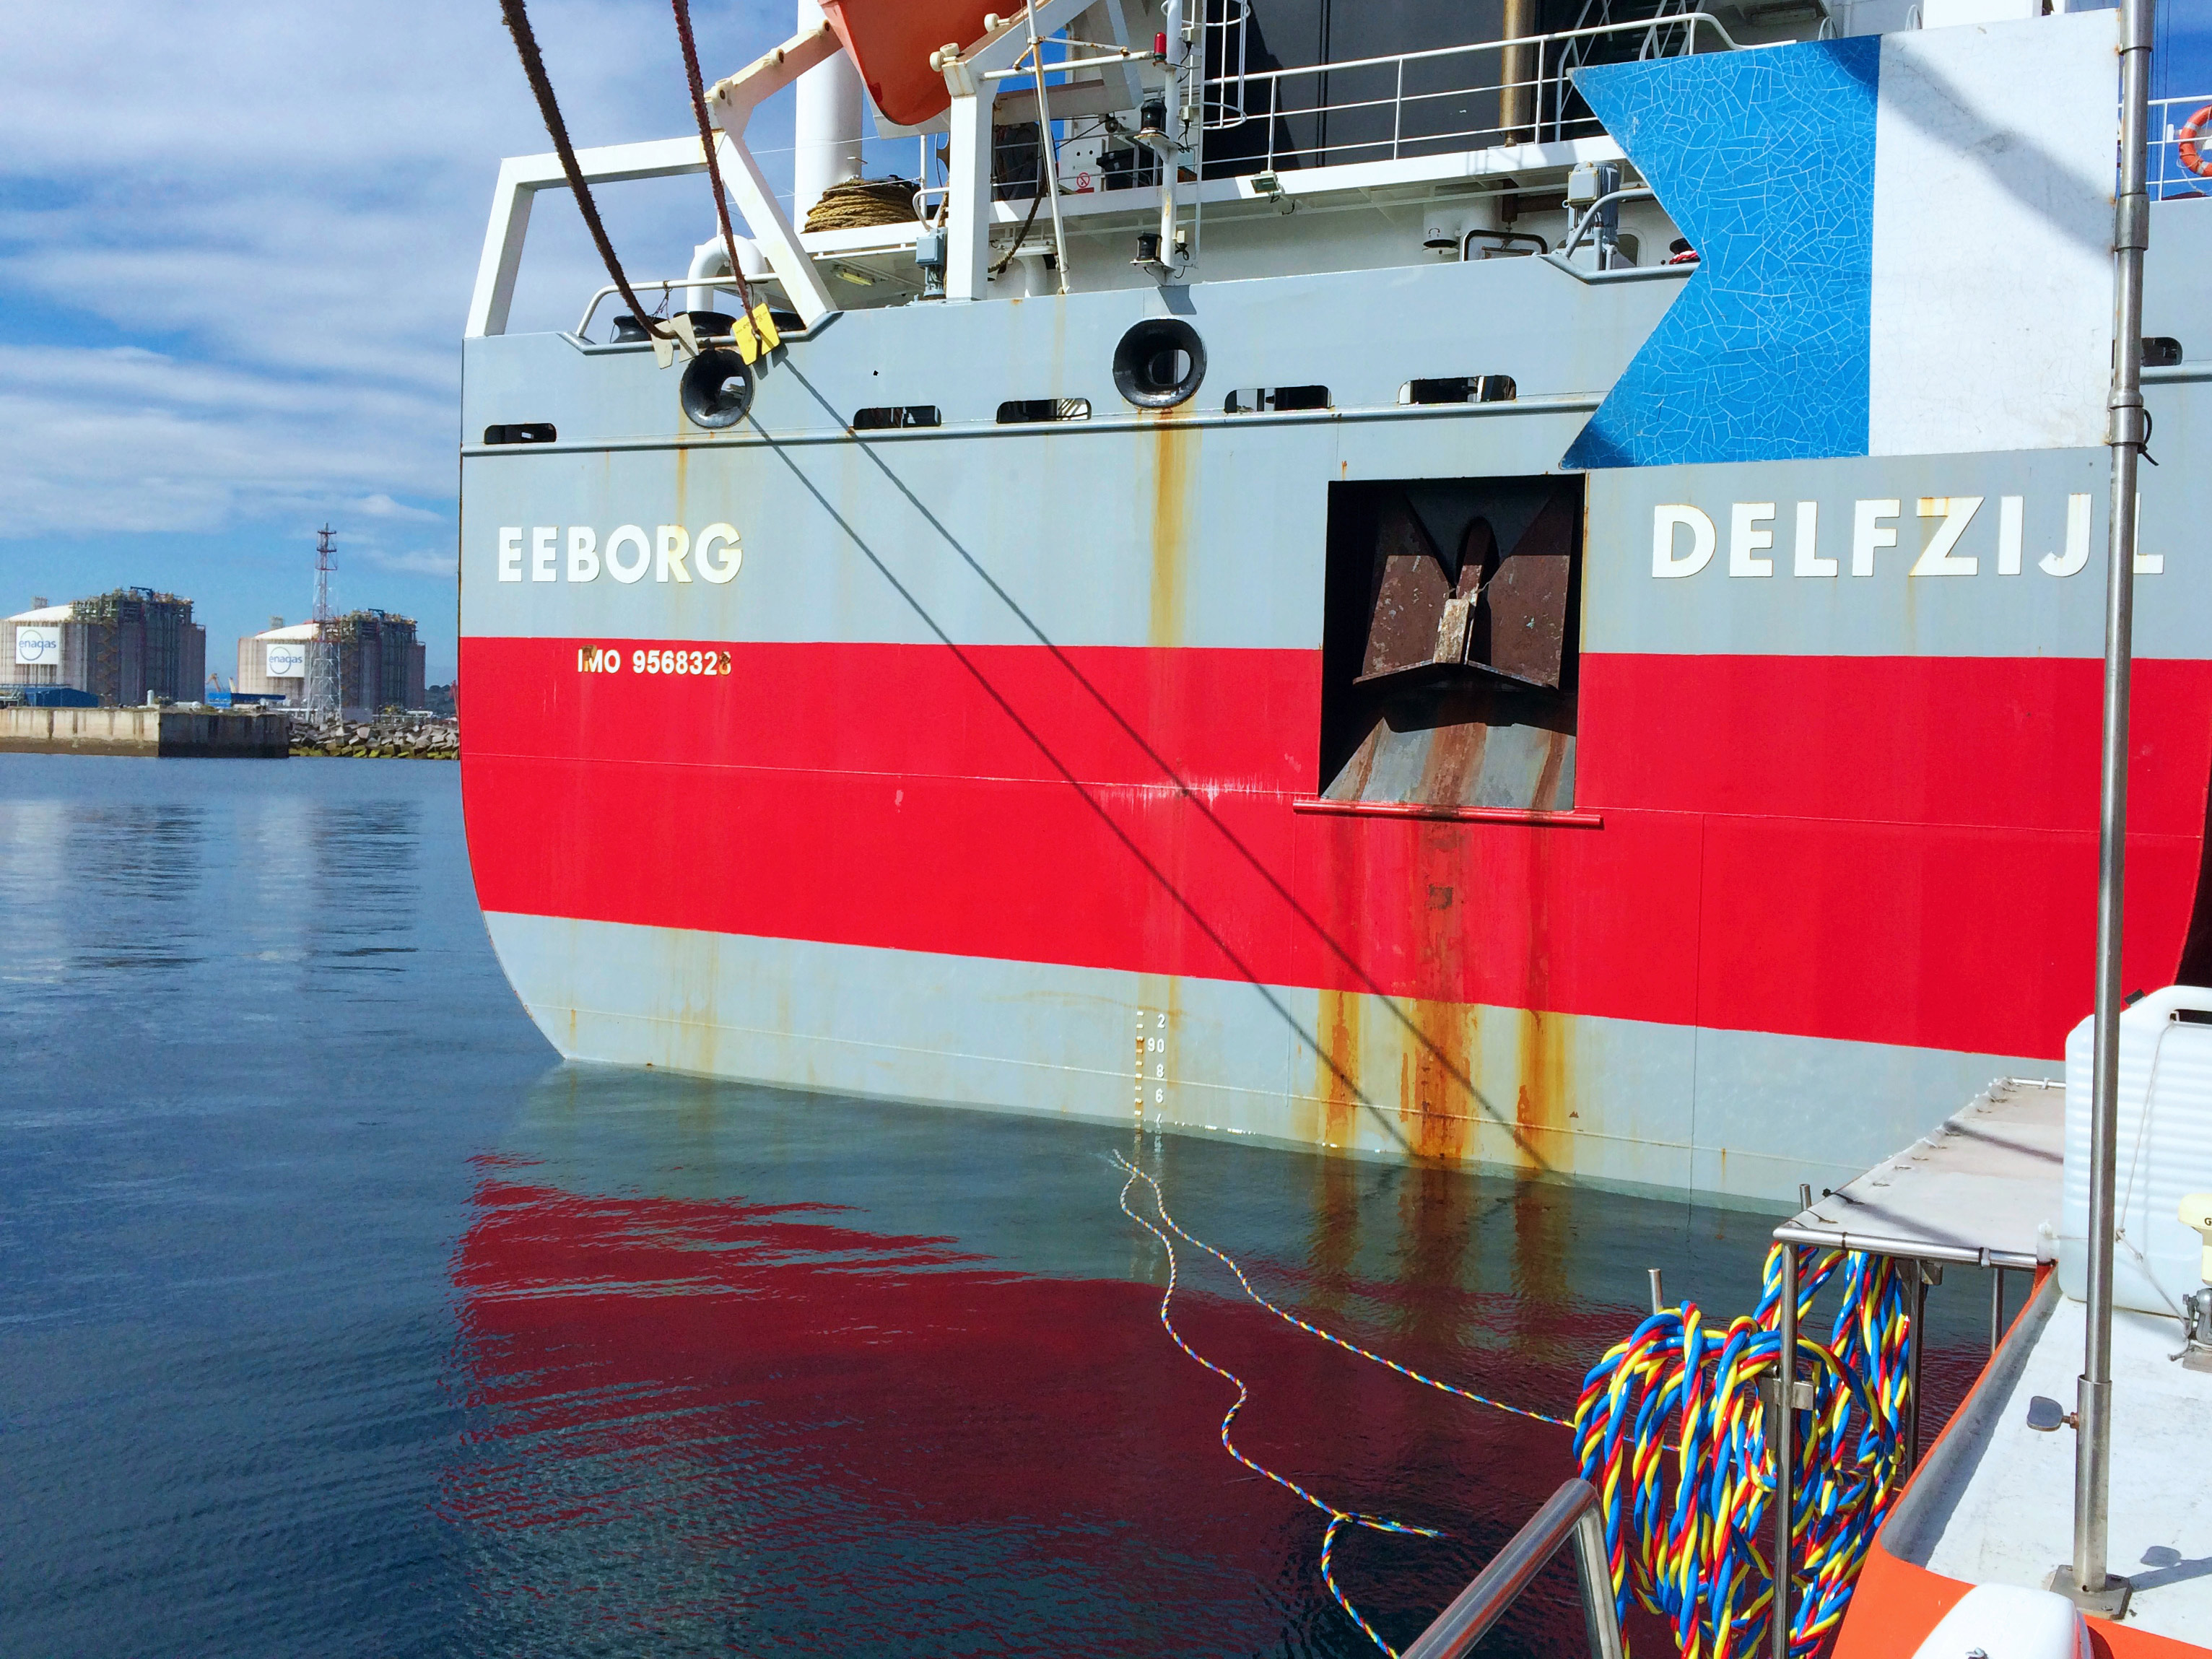 Inspection of ship fouling for scientific research